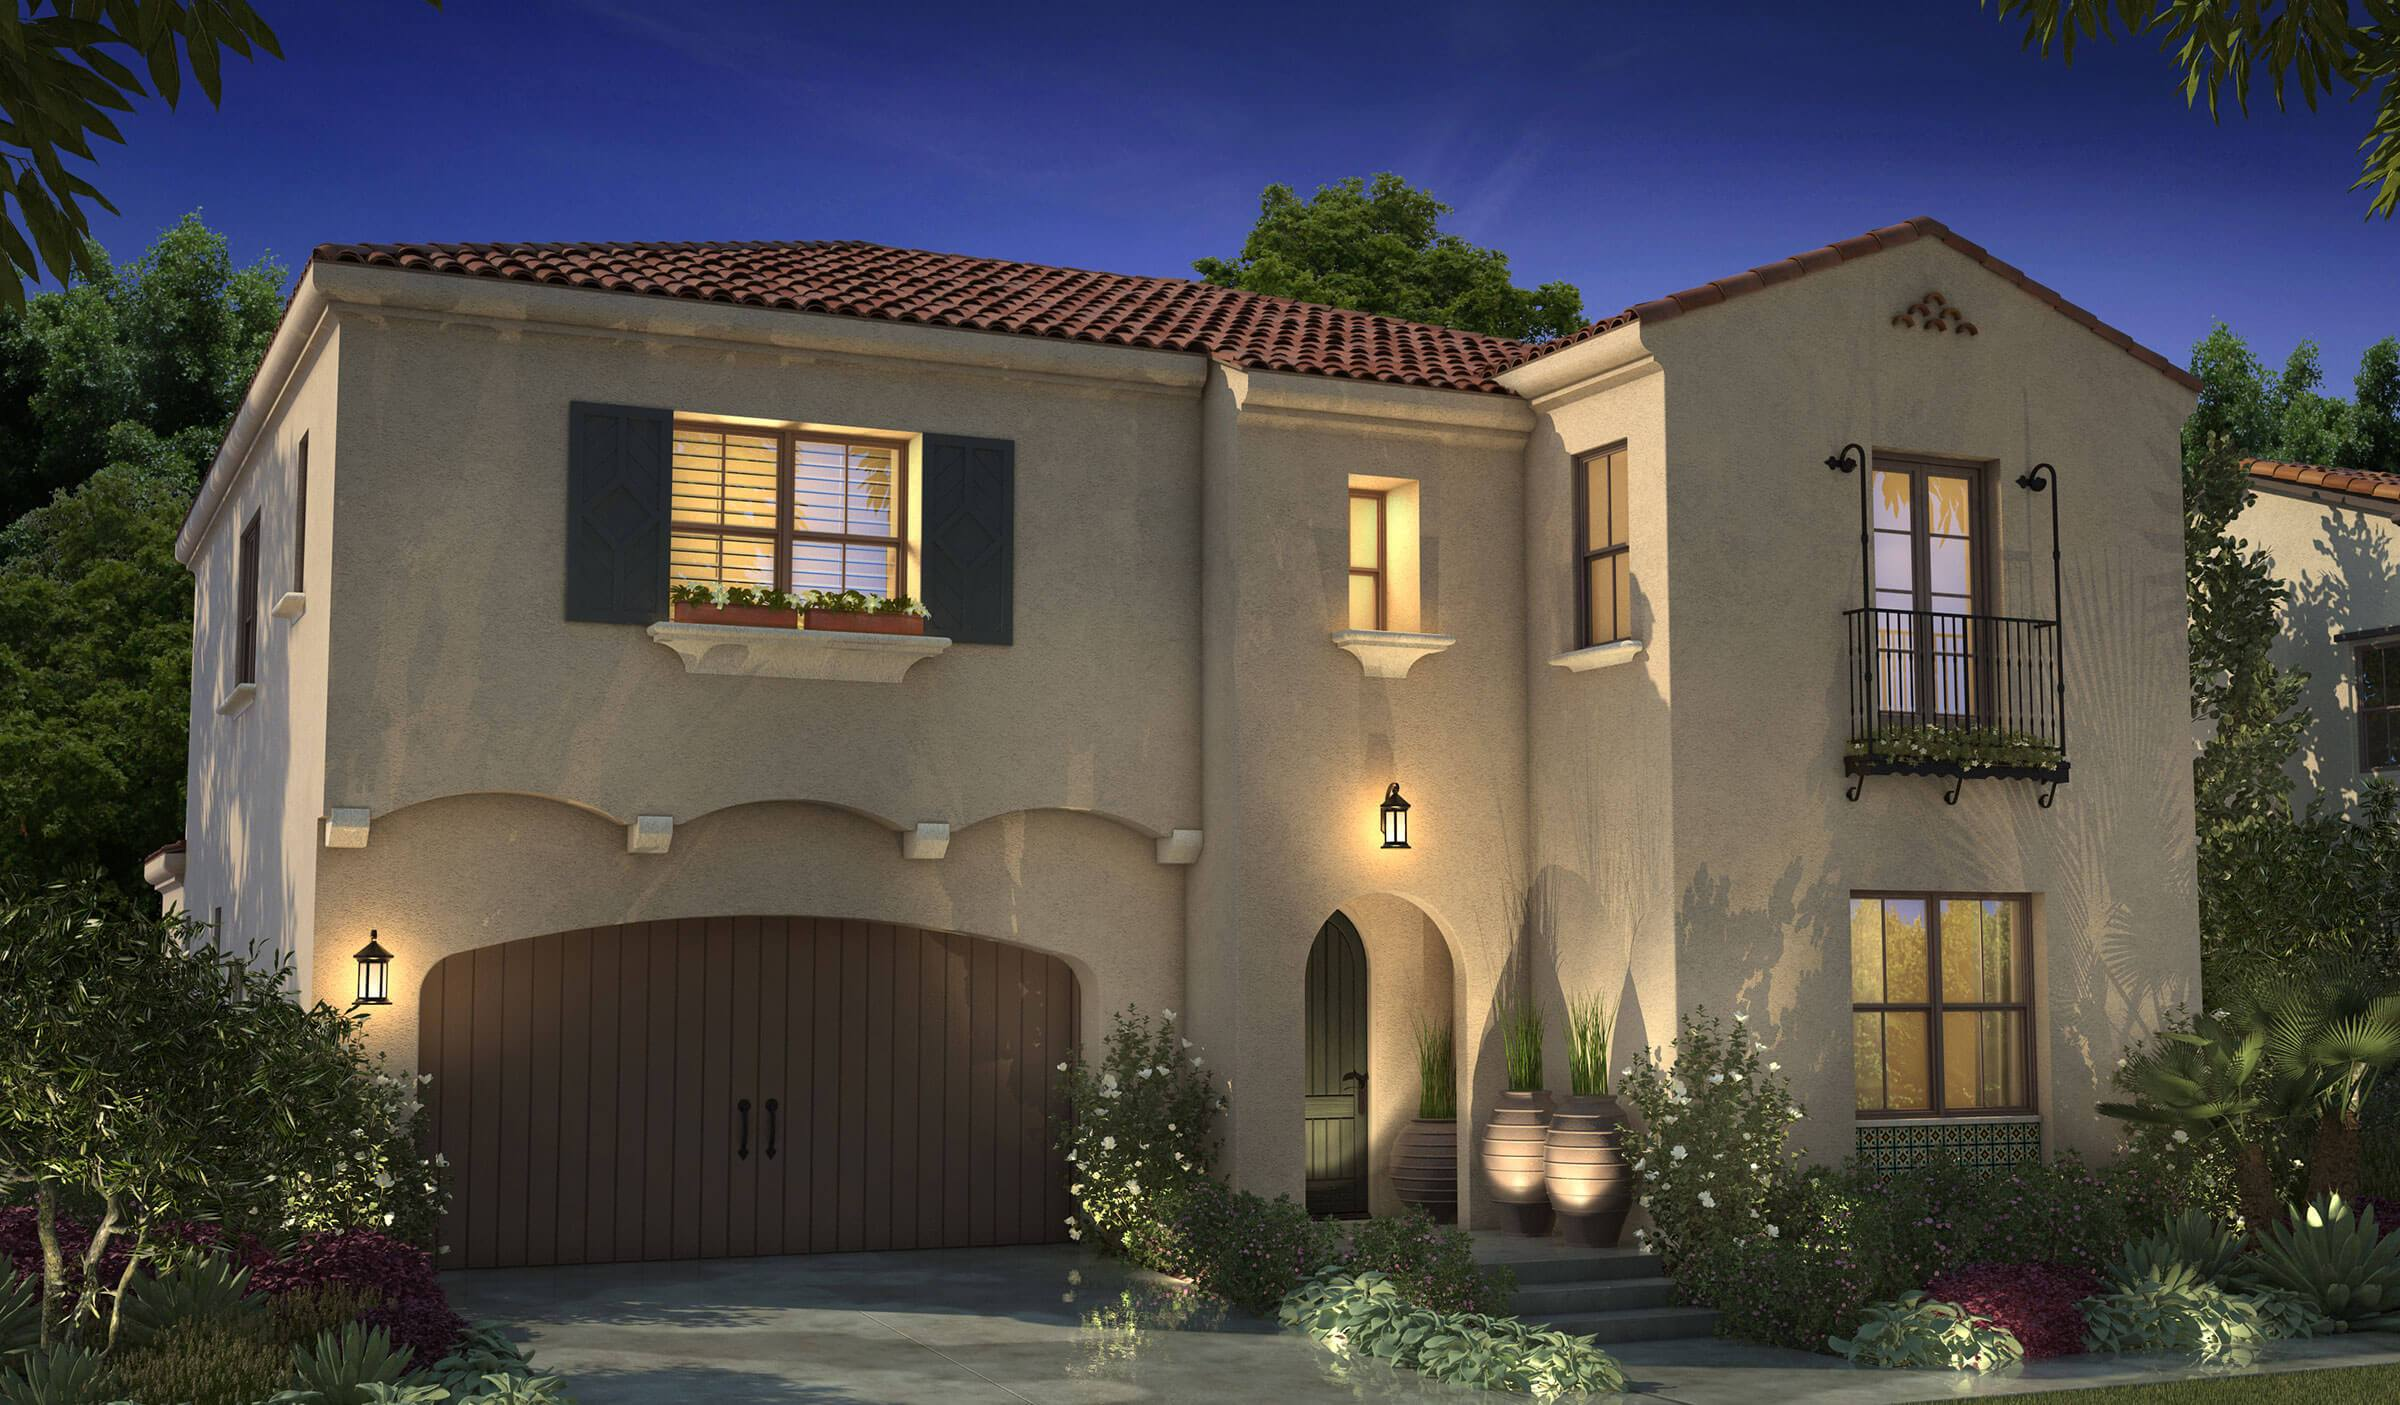 Single Family for Sale at Calistoga At Eastwood Village - Residence 2 109 Frontier Irvine, California 92620 United States